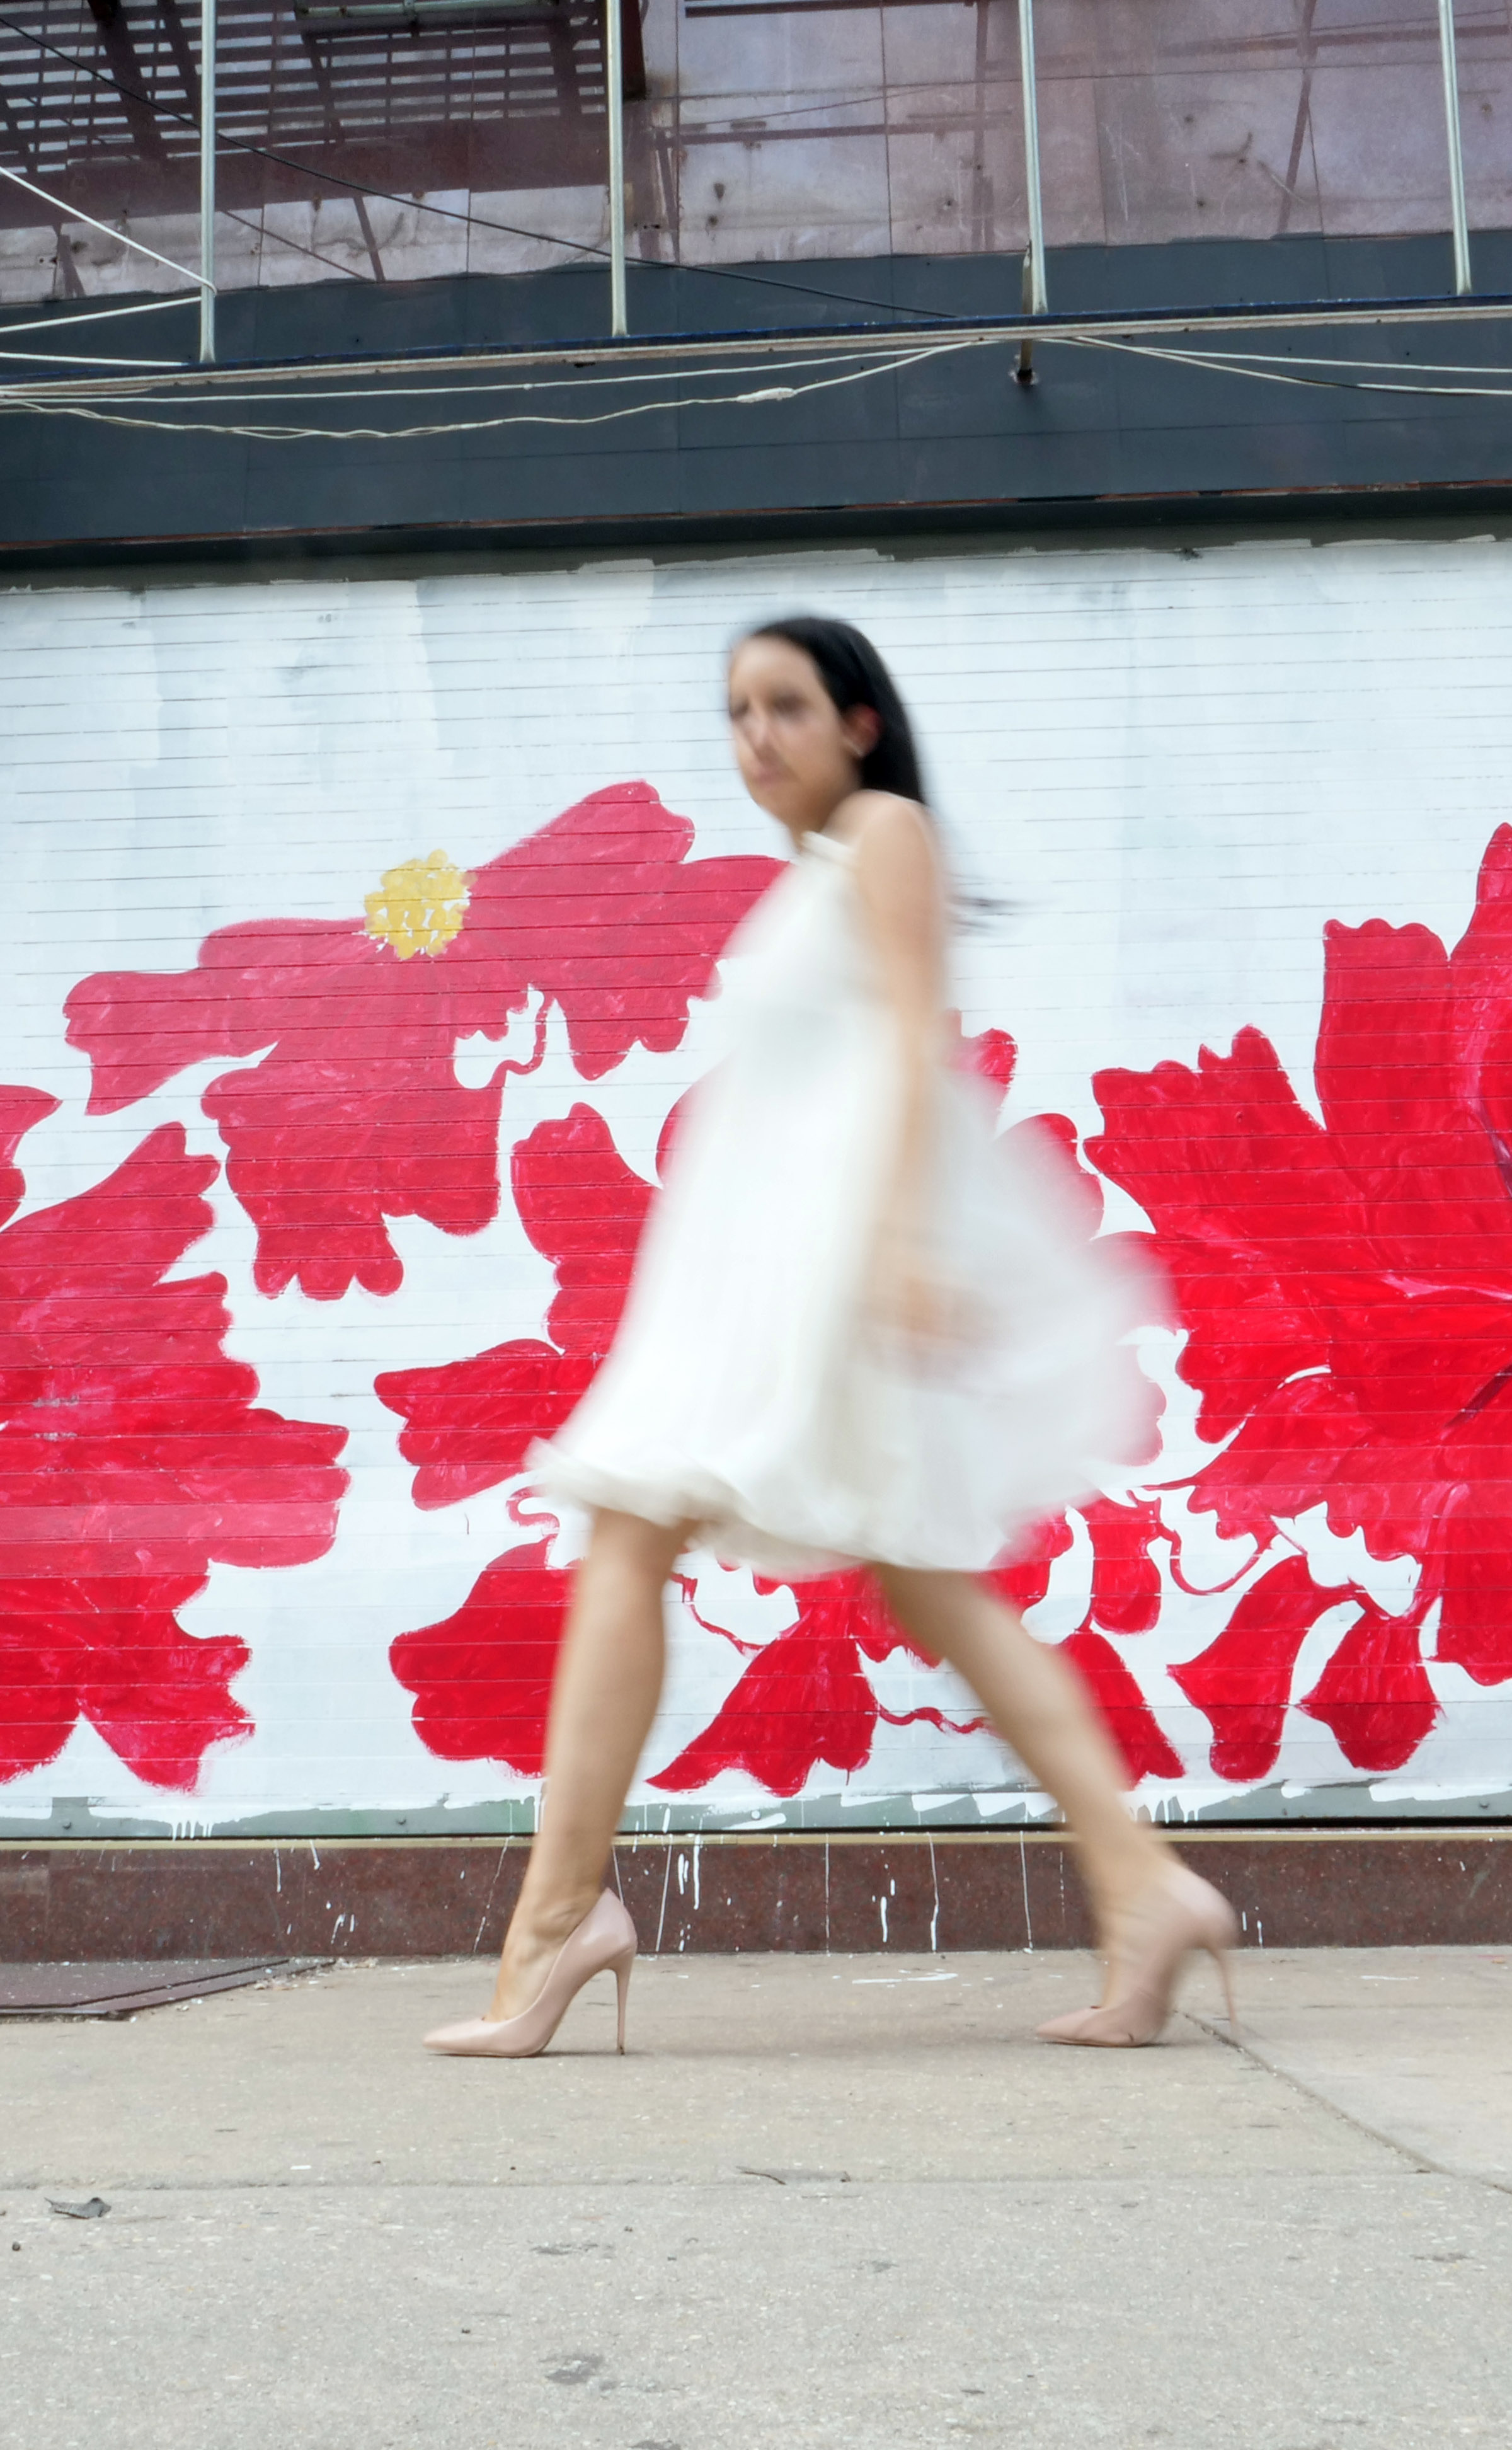 The Travel Women Street Photography Guide: Stride By